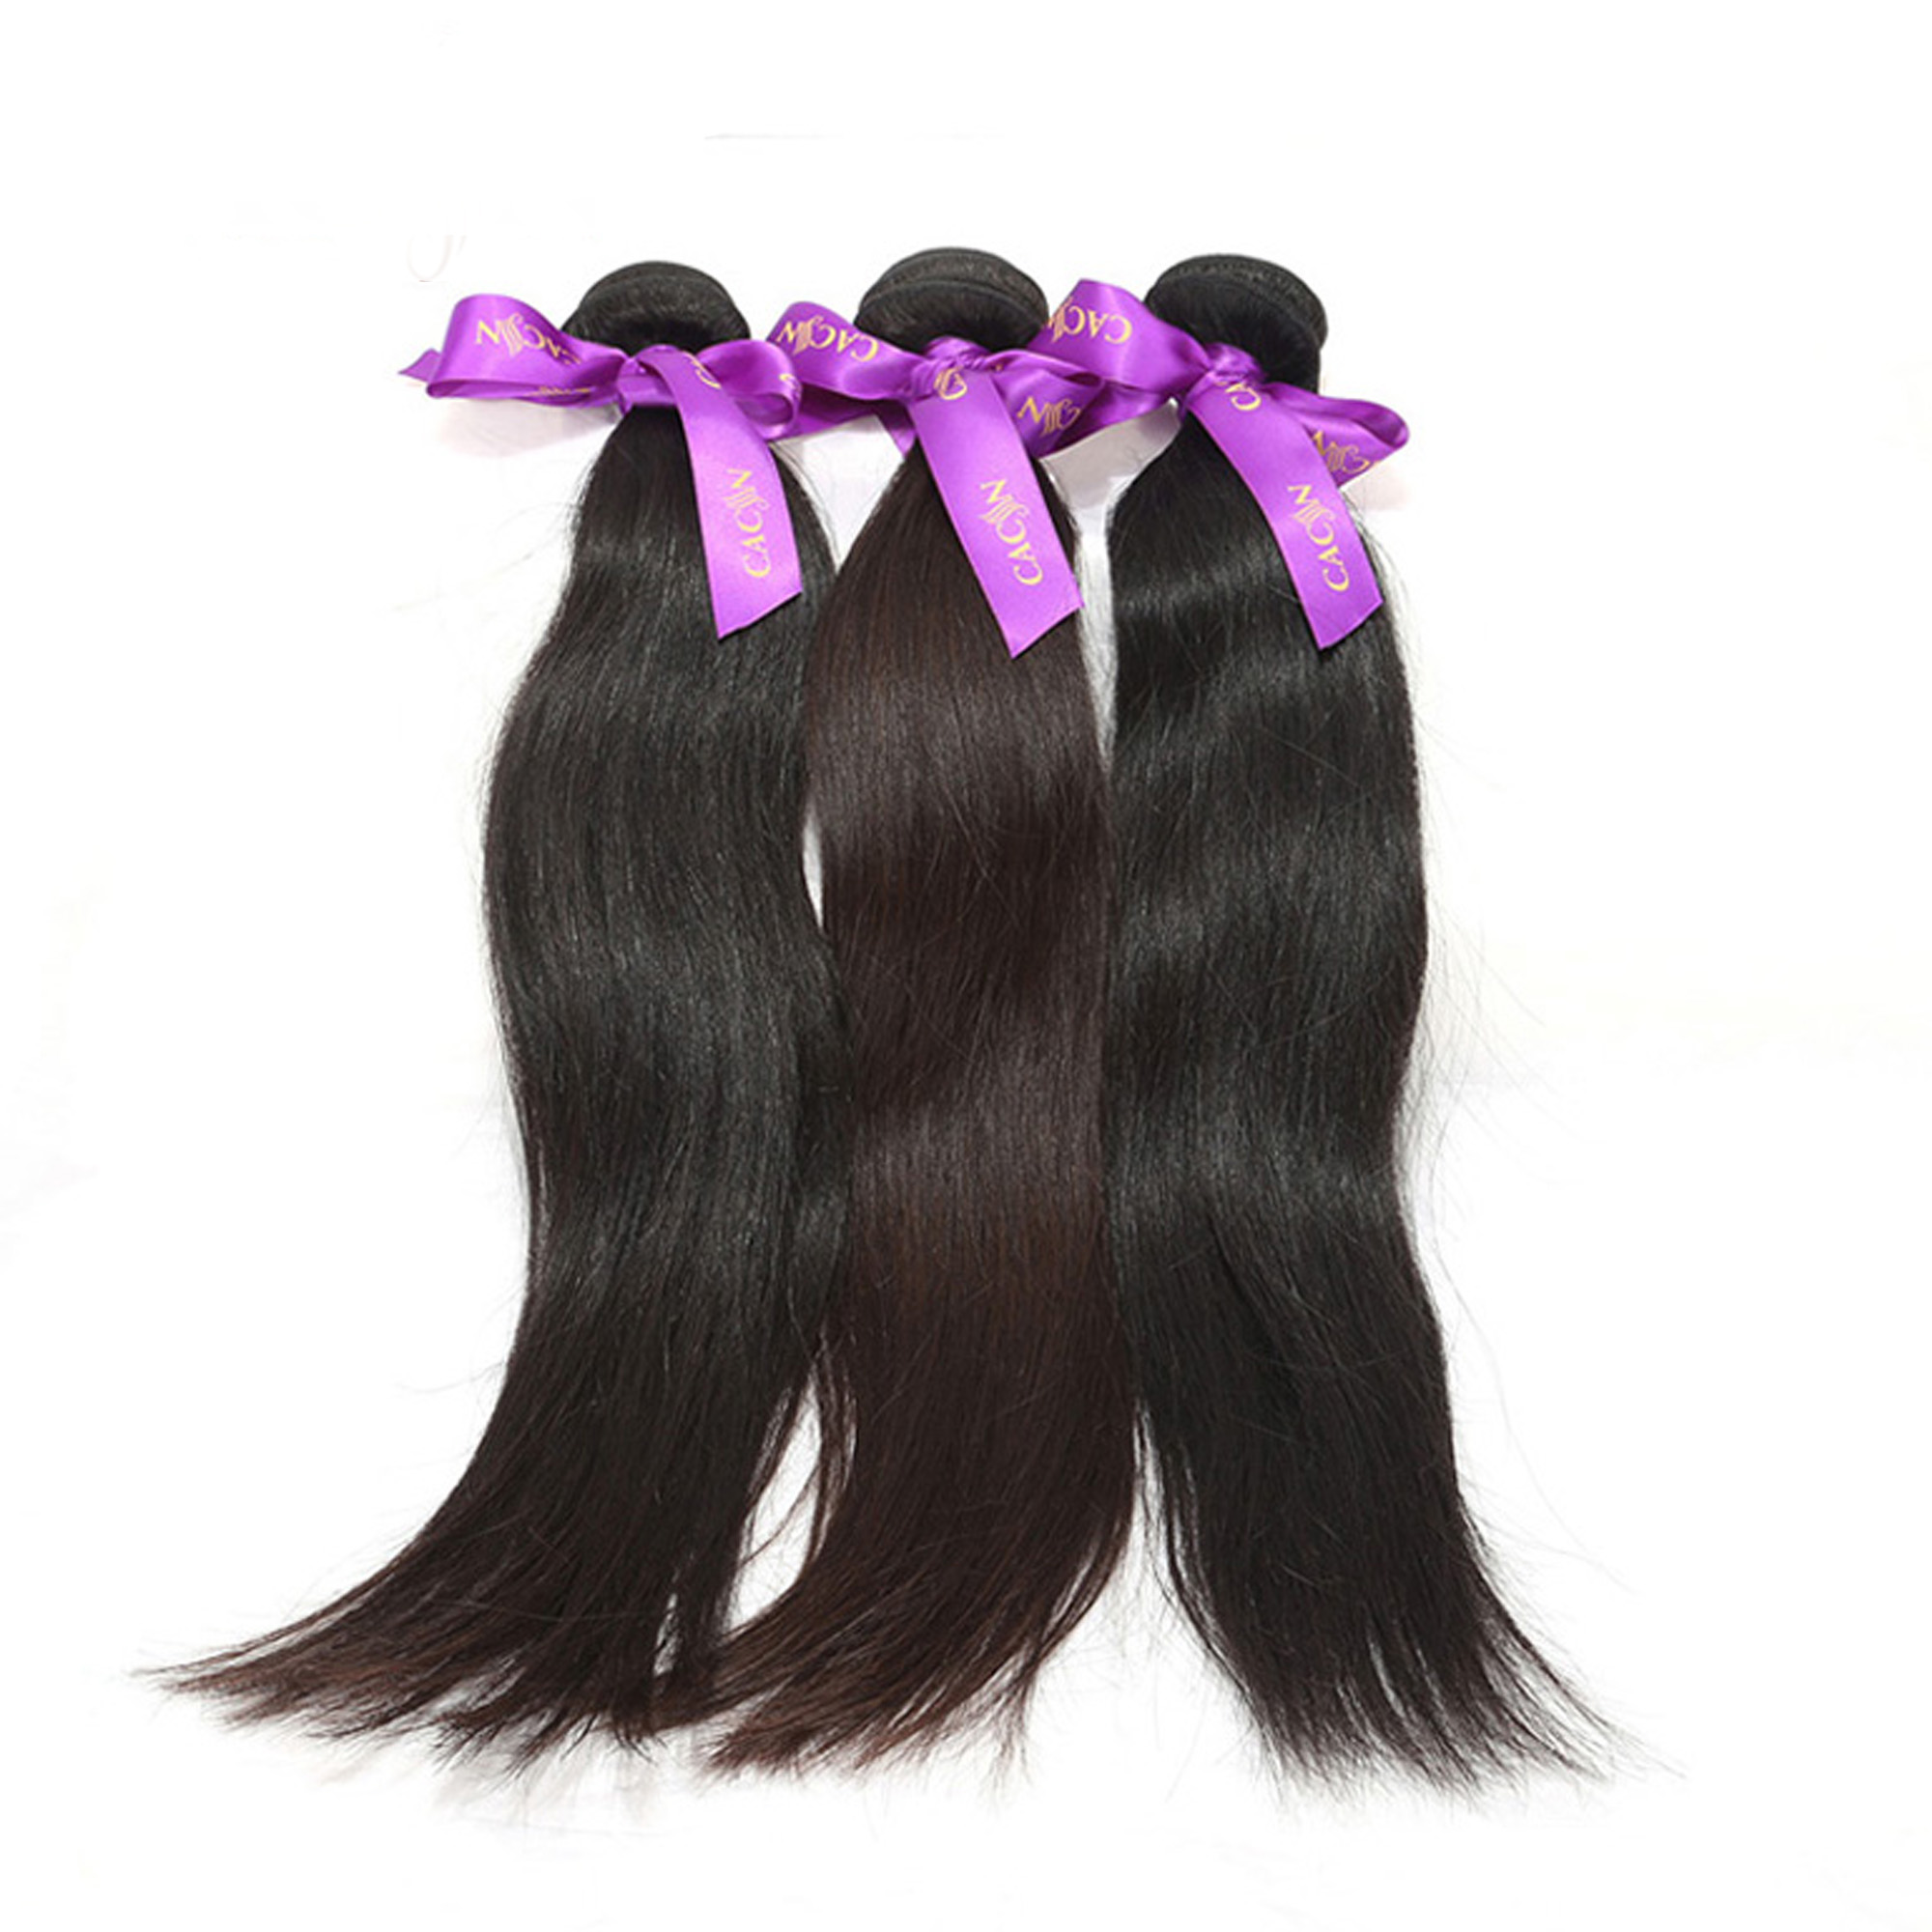 Wholesale distributor vietnam 100% natural raw unprocessed cuticle aligned remy virgin indian temple straight human hair product, N/a